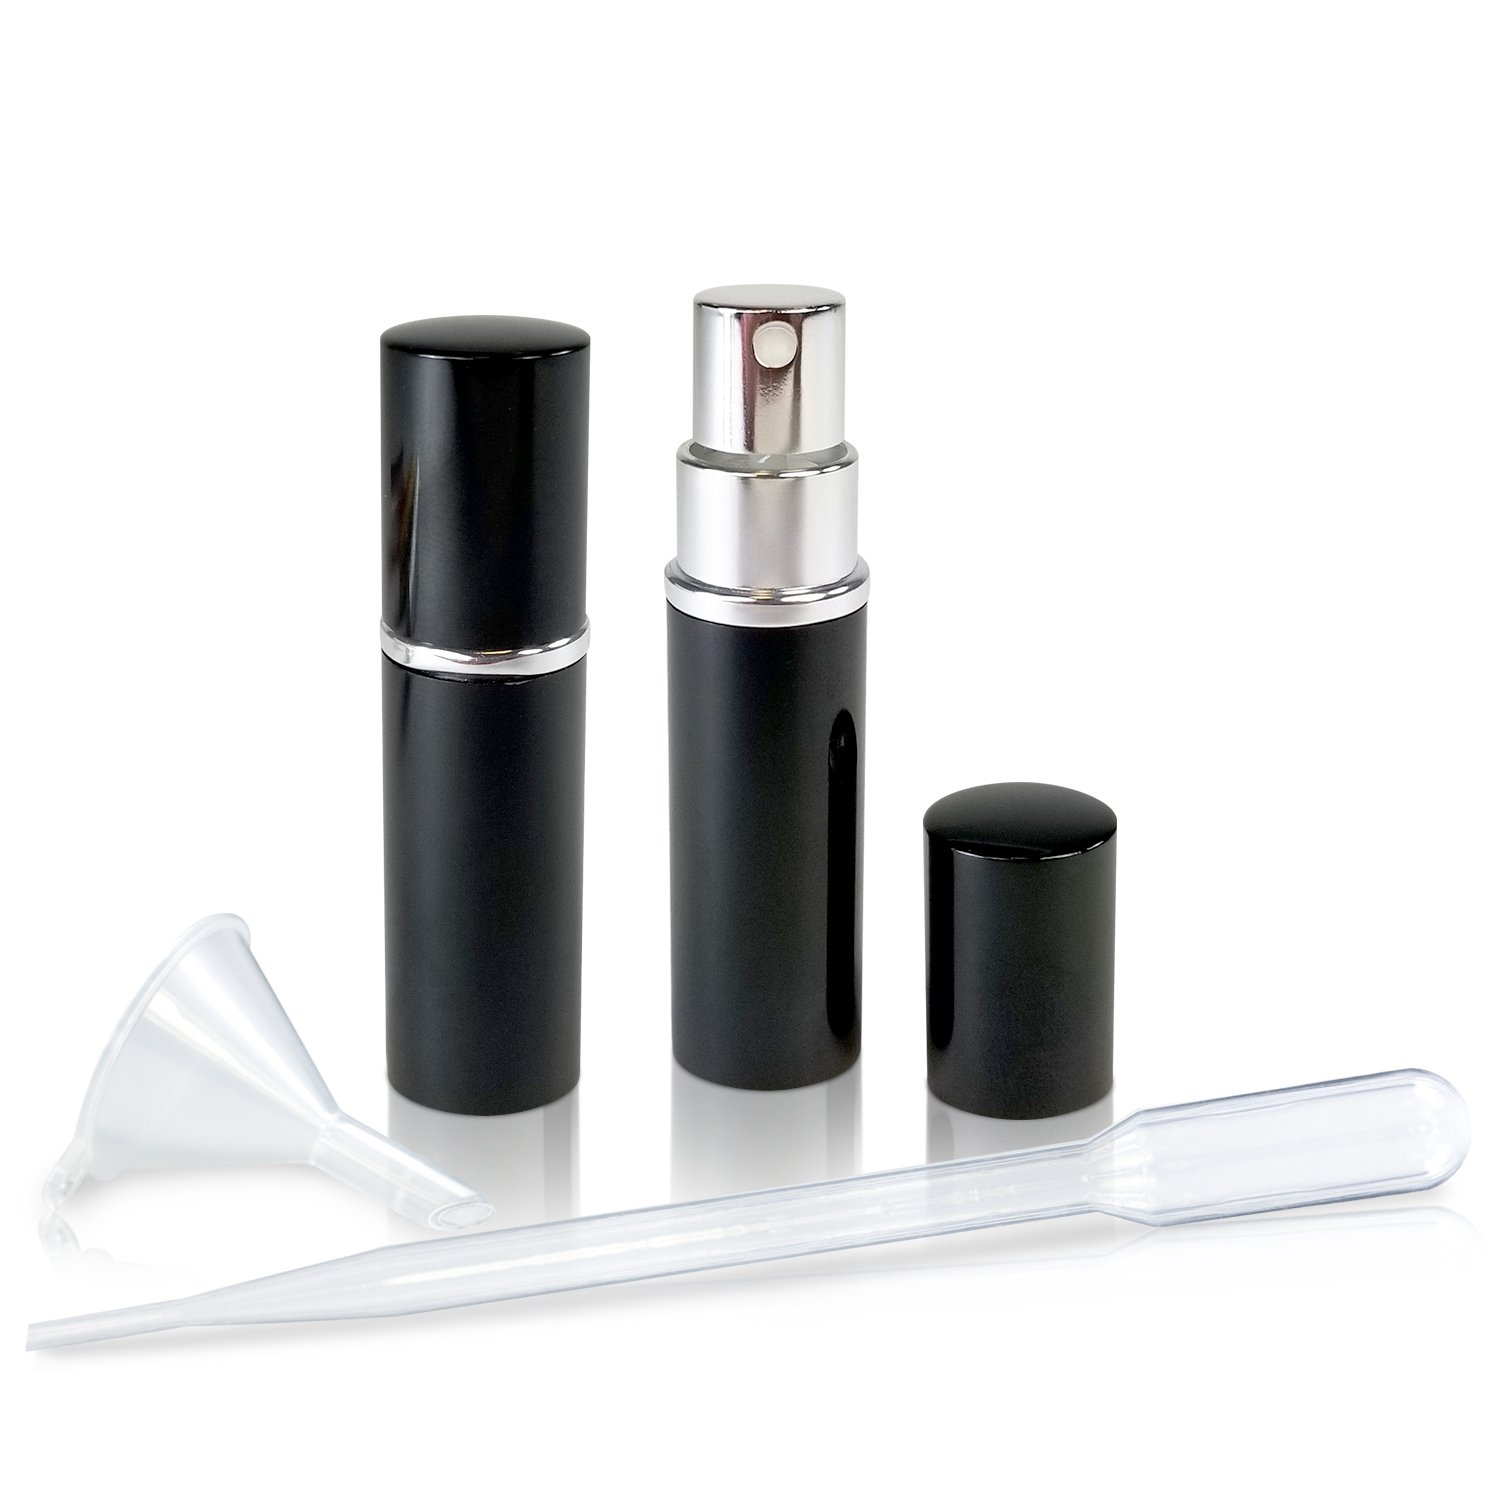 Refillable Perfume & Cologne Fine Mist Atomizers with Metallic Exterior & Glass Interior - 5ml Portable Travel Size - 3ml Squeeze Transfer Pipette Included (2 Pack, Black)